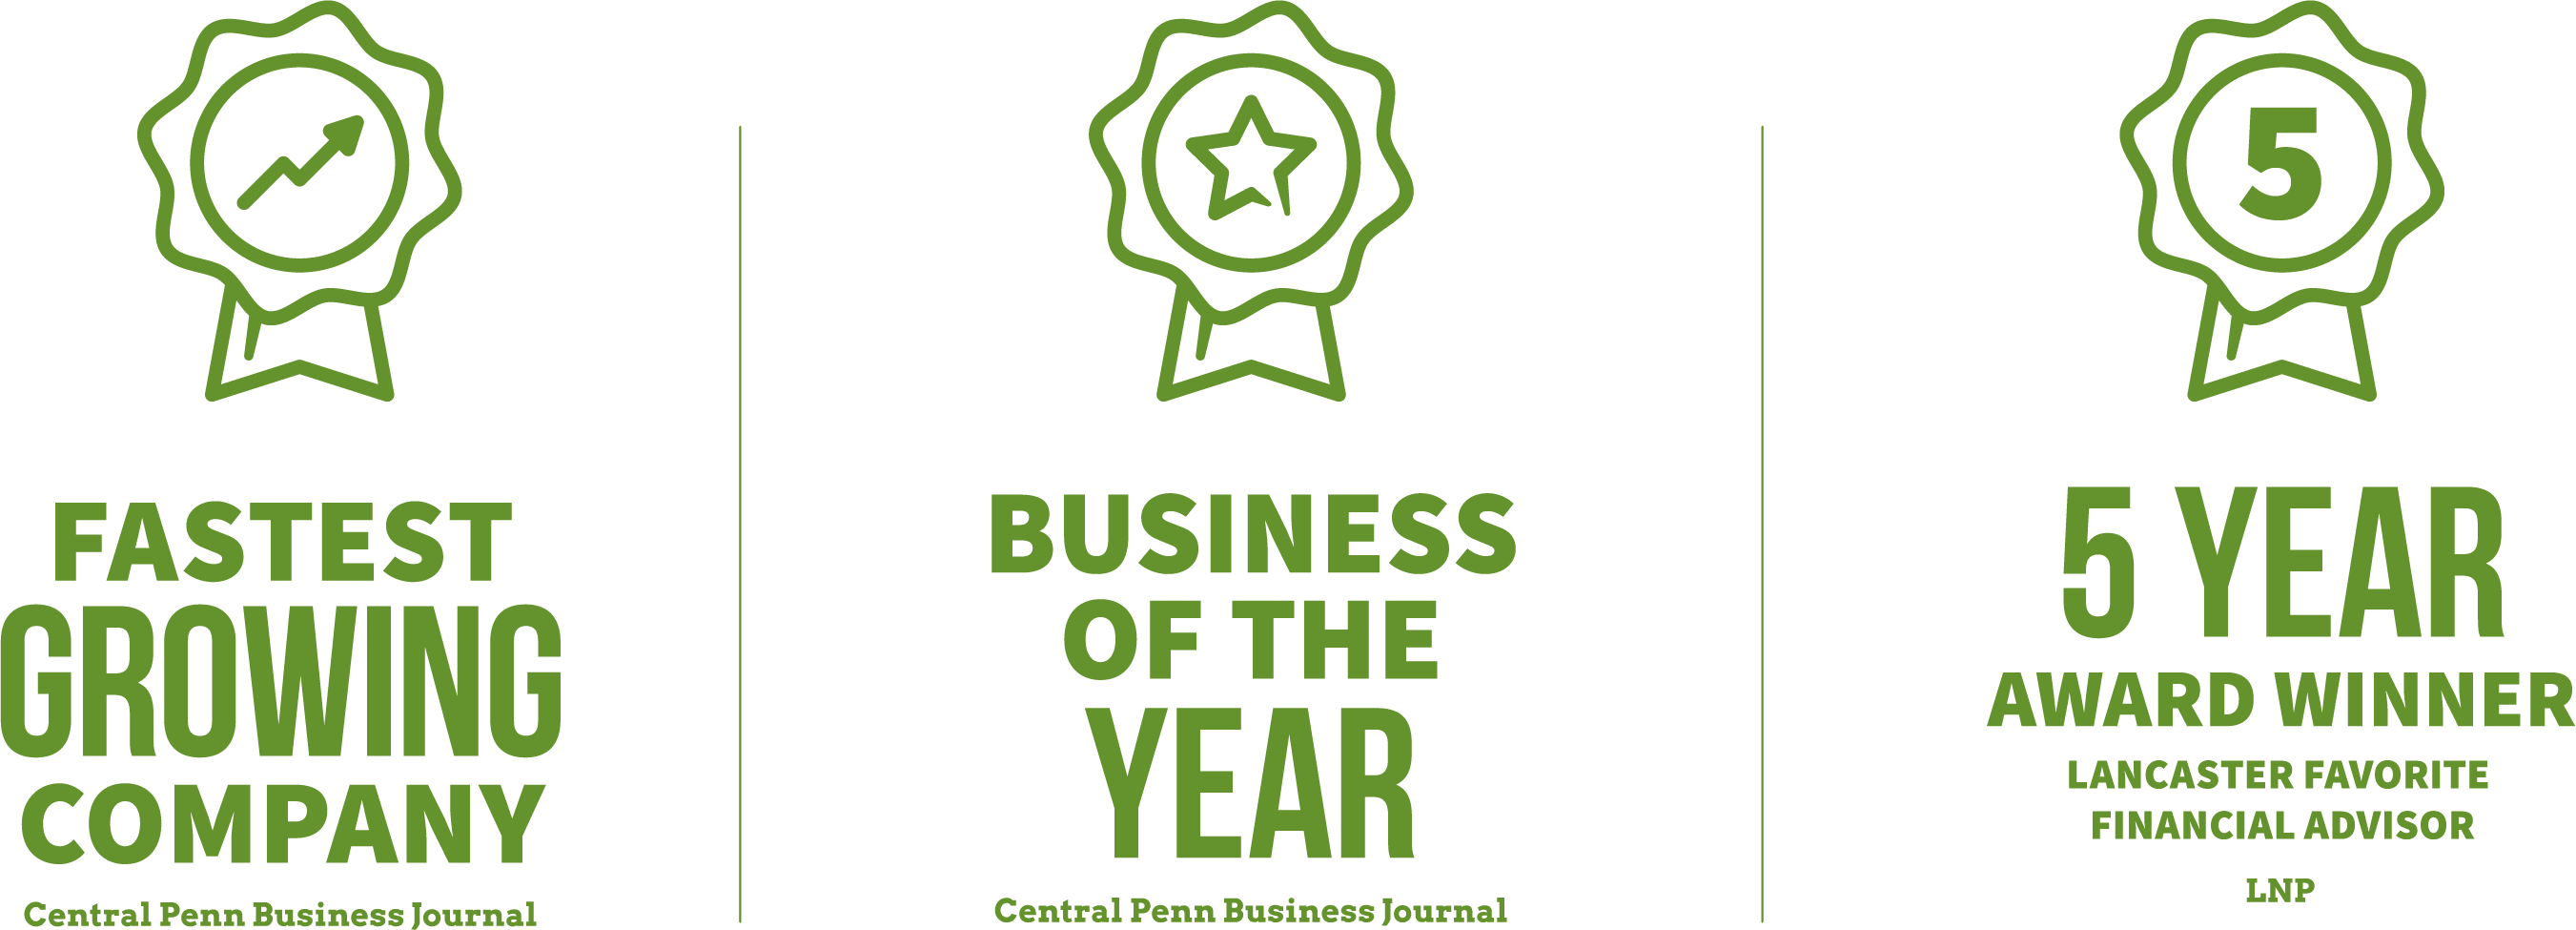 Fastest Growing Company, Business of the Year, and 5 Year Lancaster Favorite Financial Advisor Awards by Central Penn Business Journal and LNP